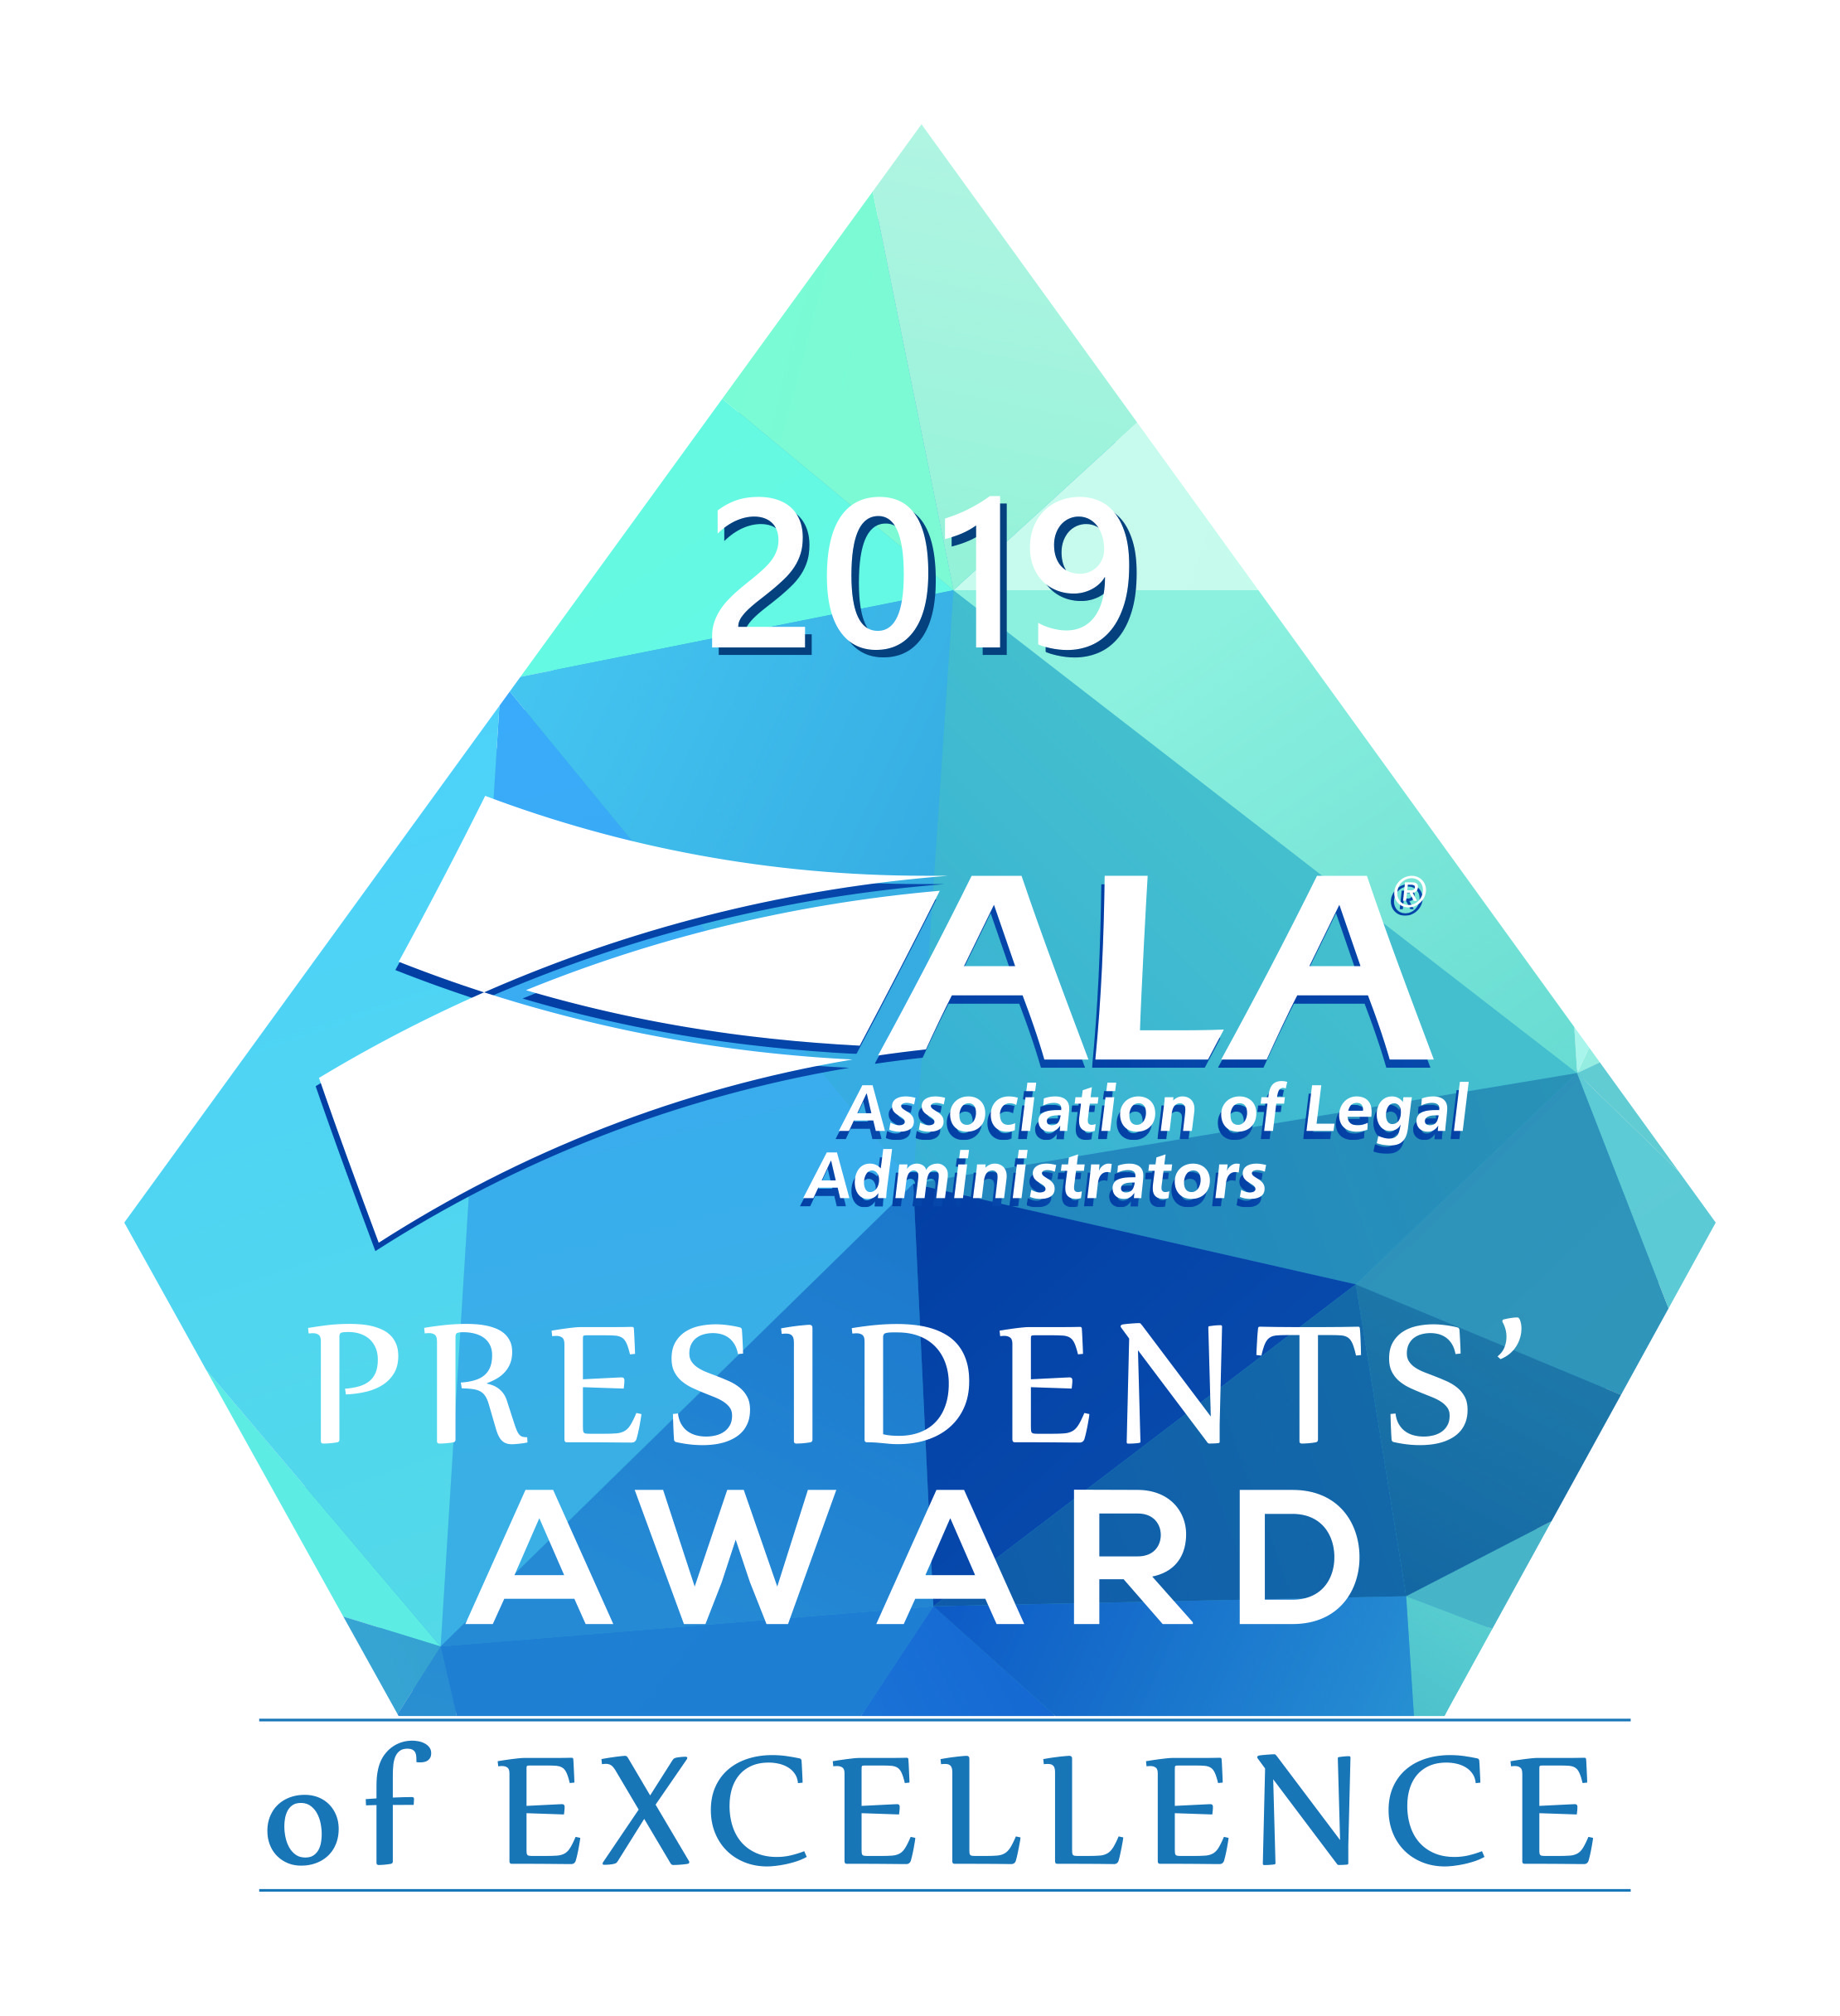 ALA2019-Presidents-Award-Excellence-514-x-530-EPS